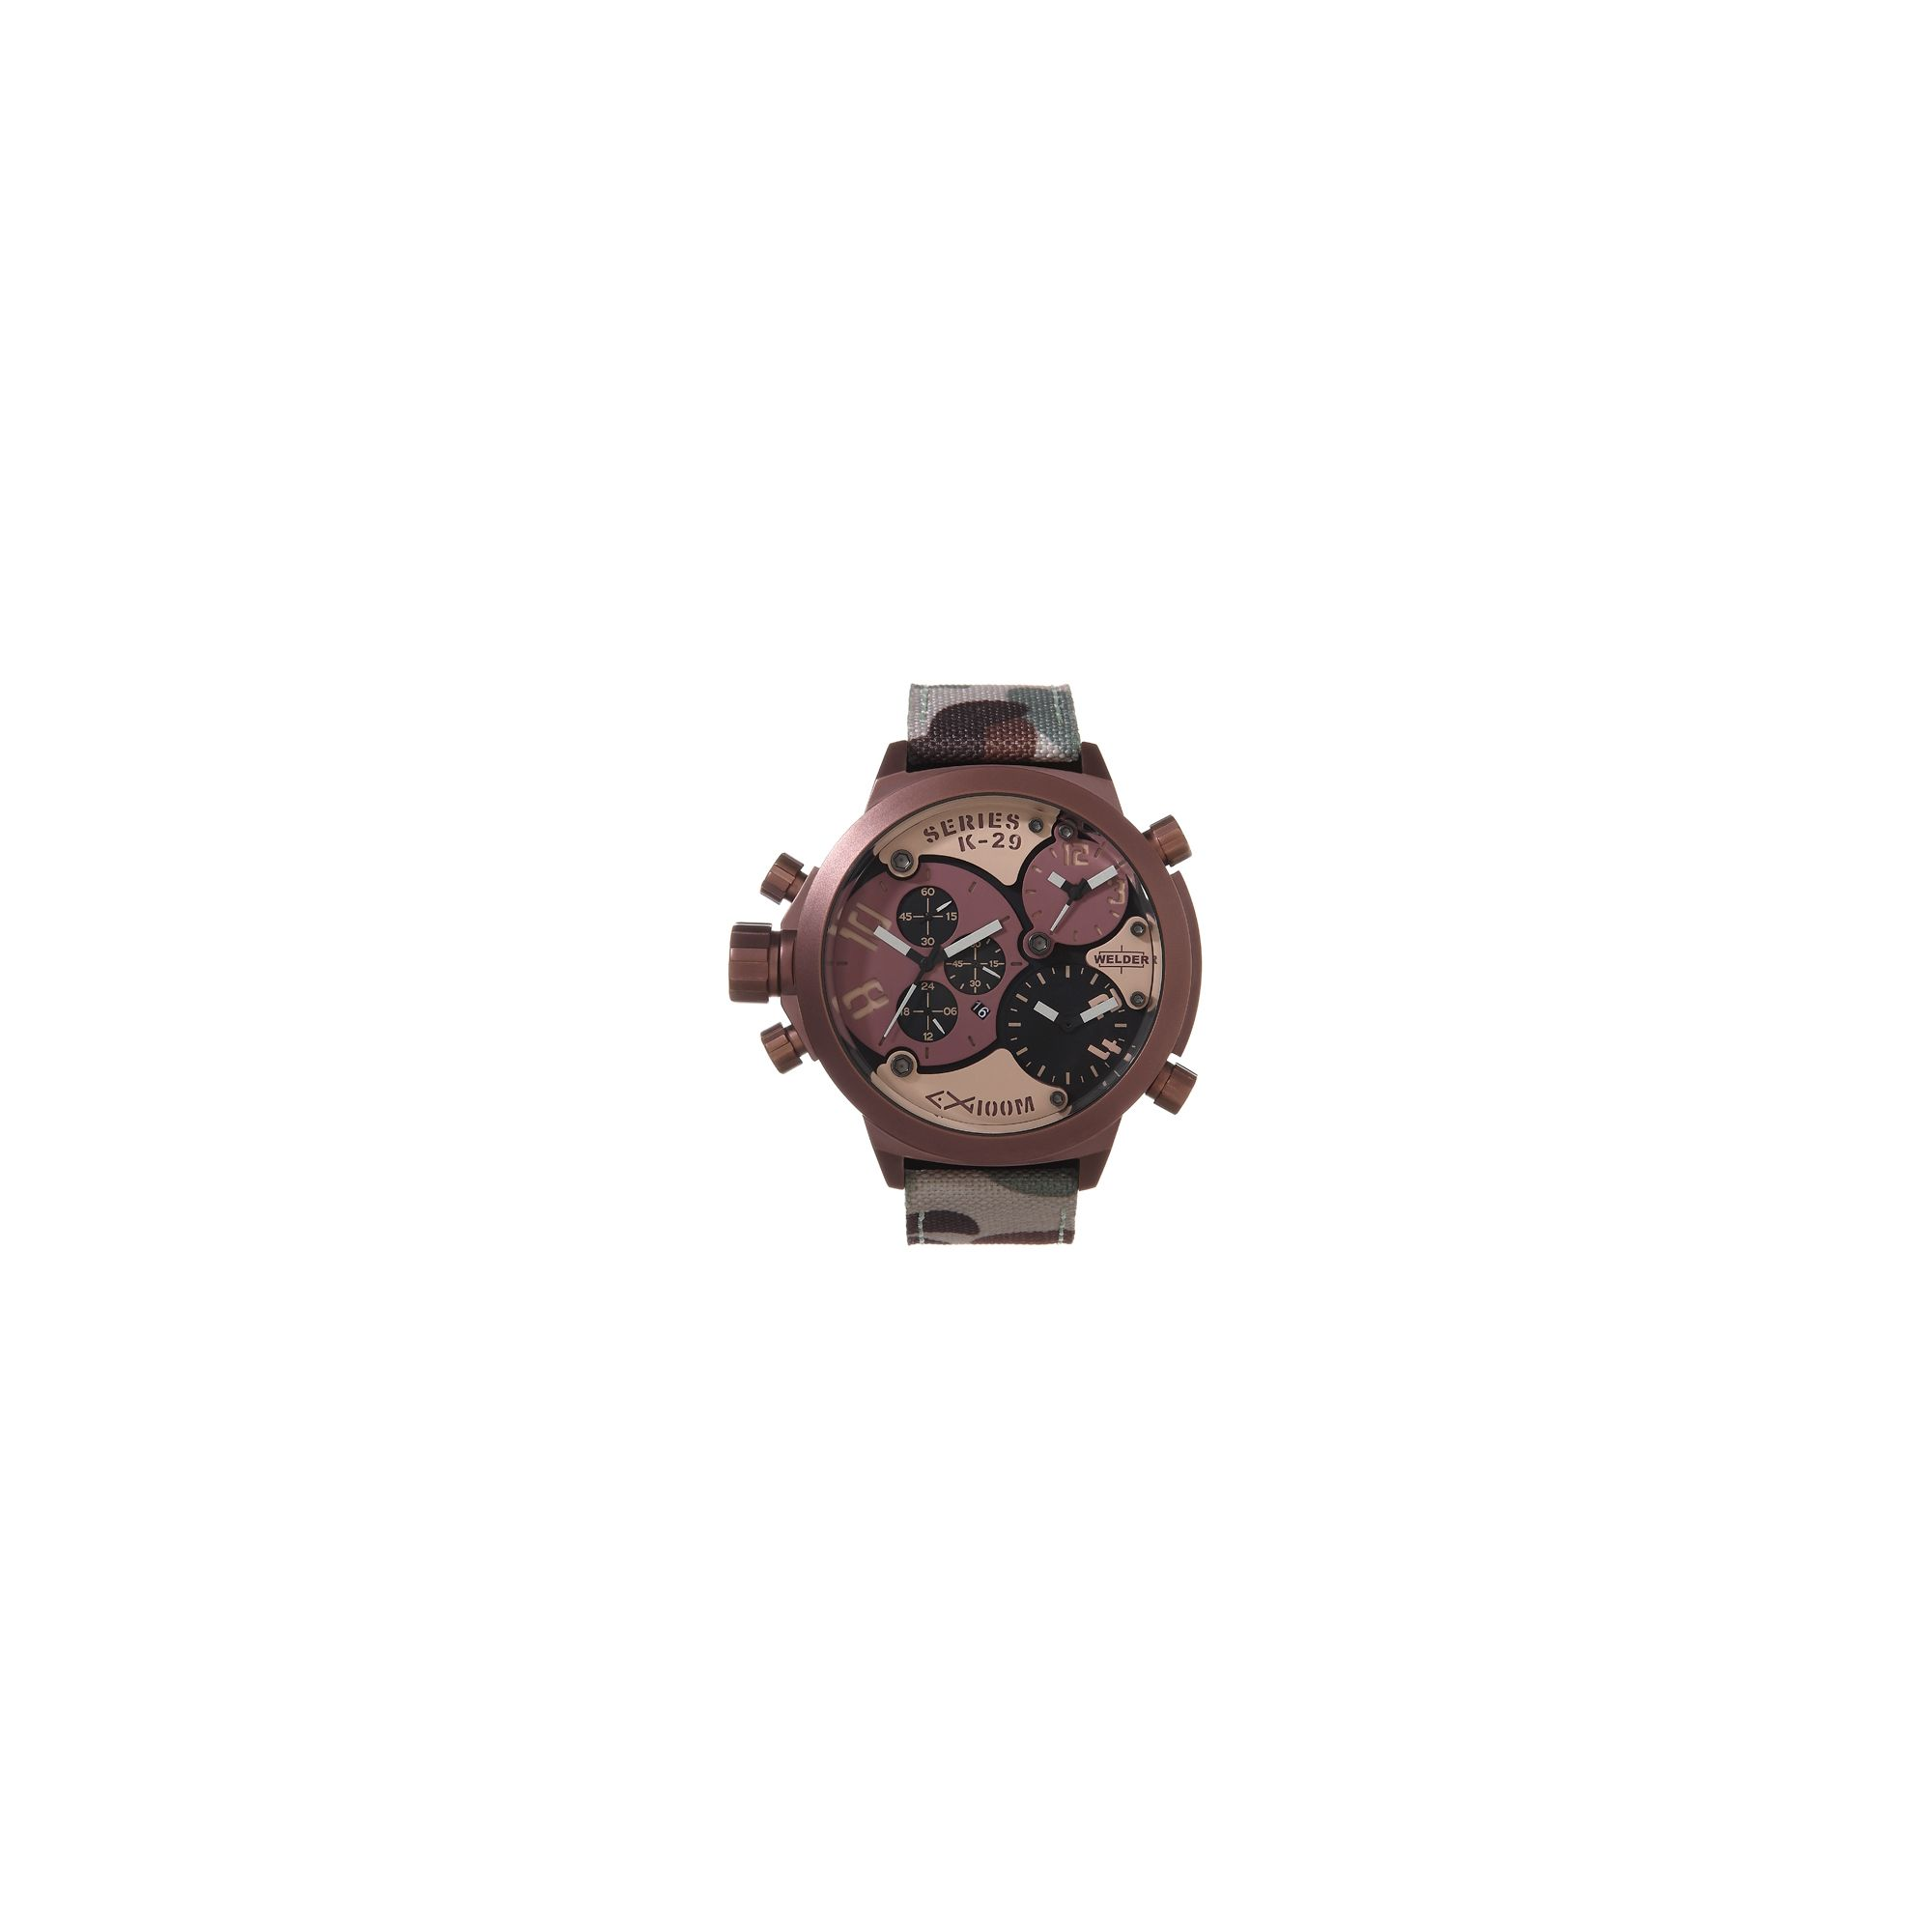 Welder Gents Brown Dial Camouflage Material Strap Watch K29-8005 at Tesco Direct